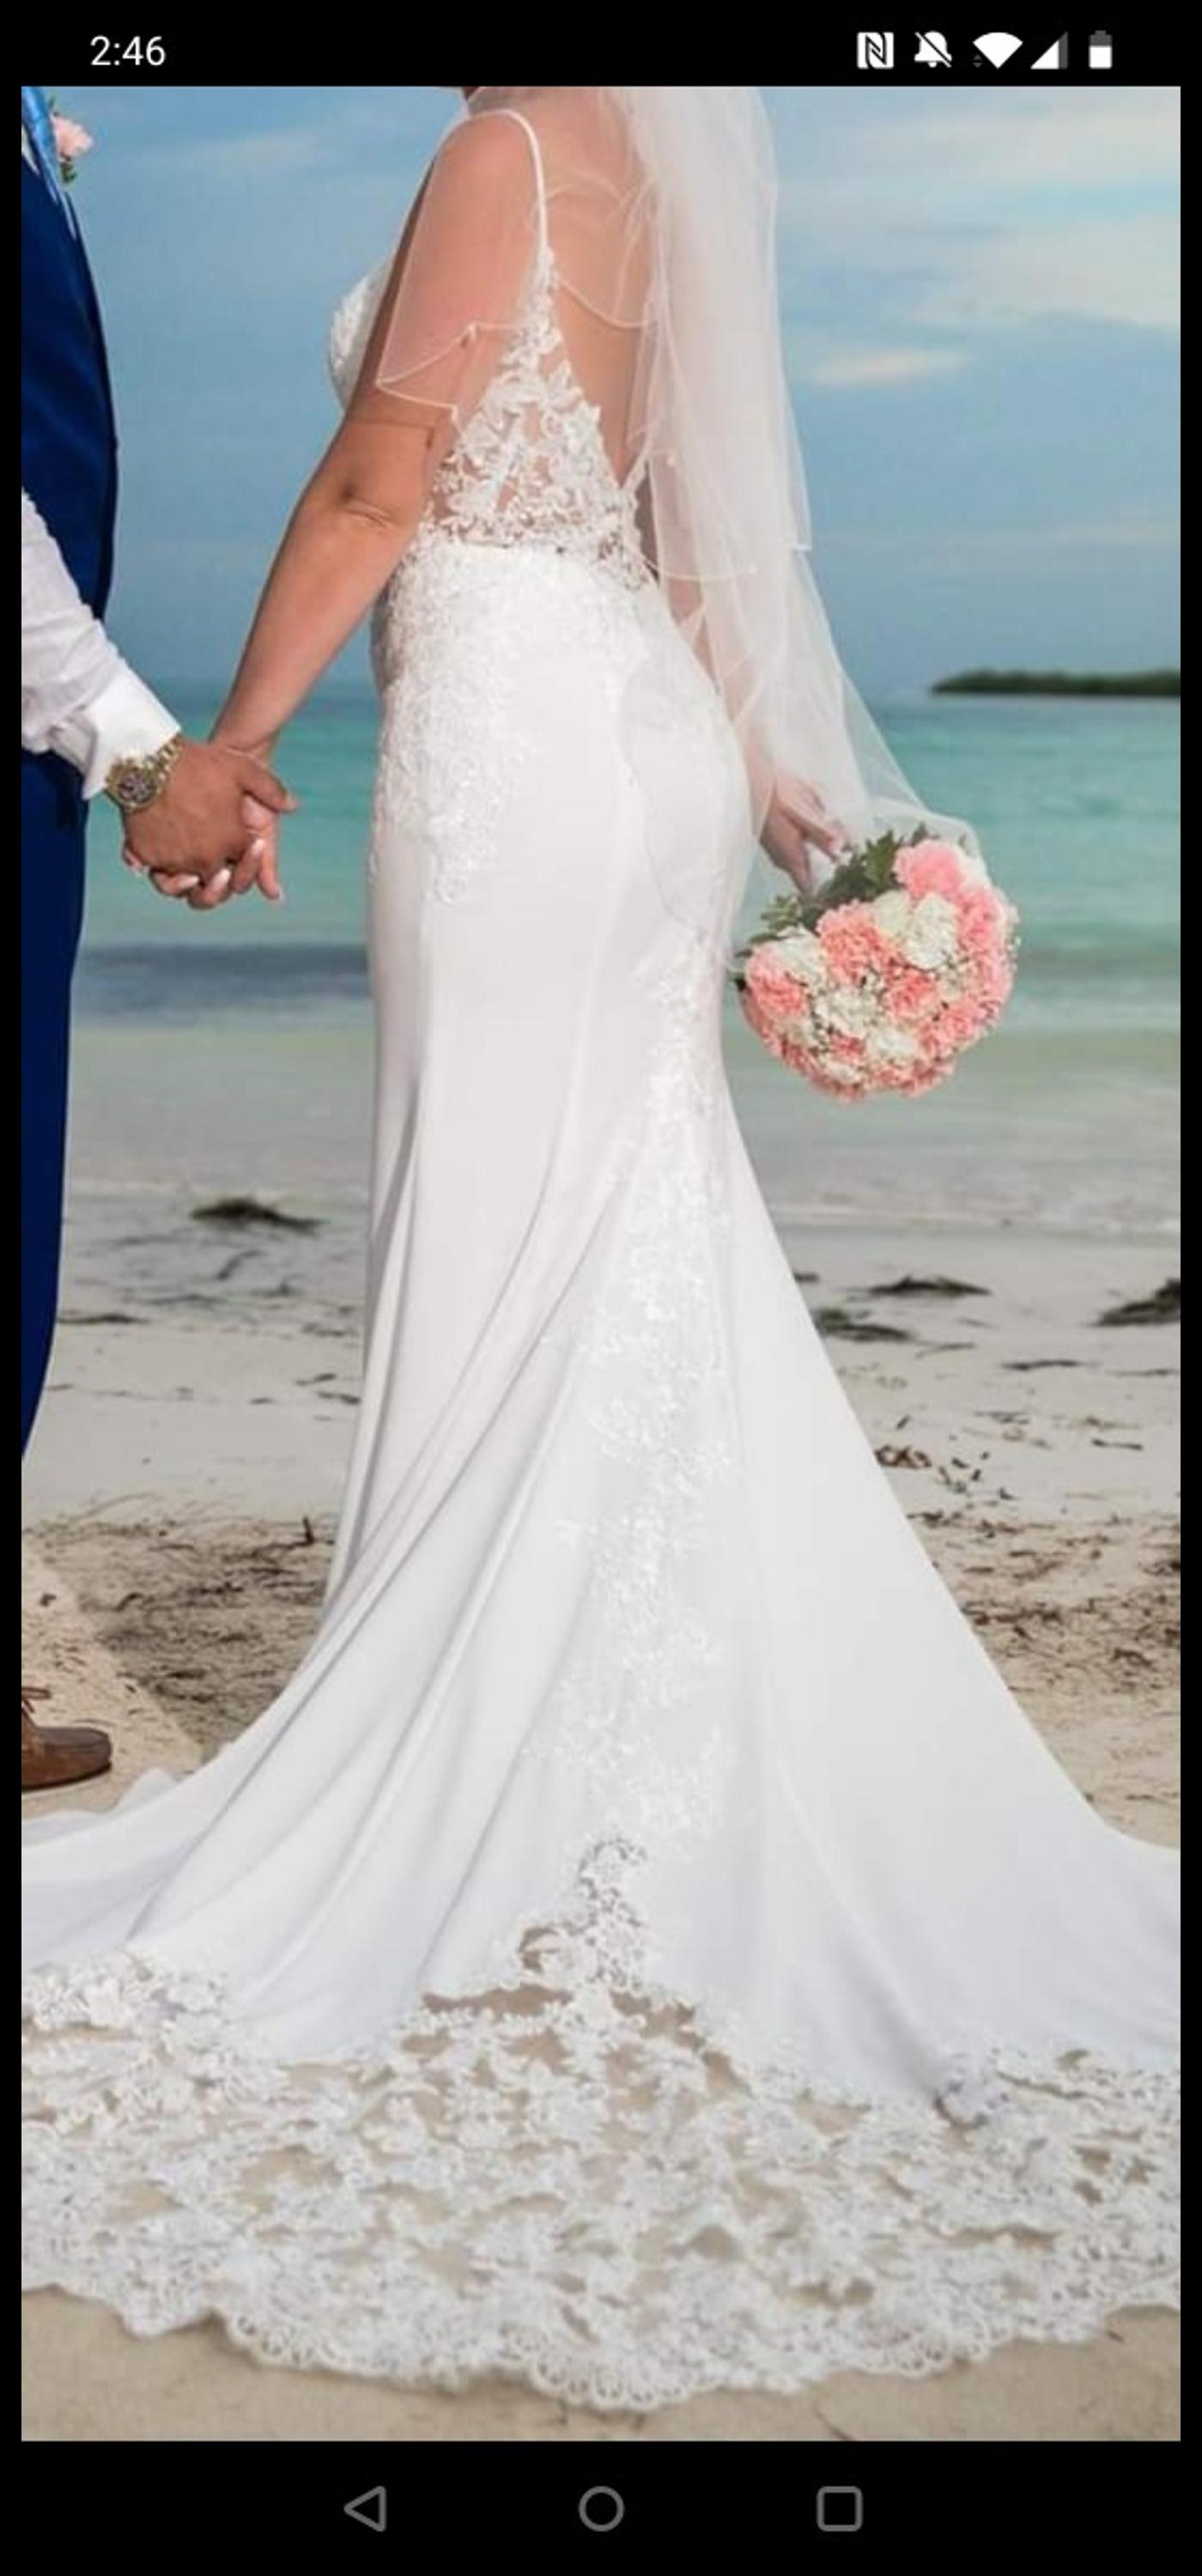 Wed2b Hayden Wedding Dress In Ng15 Ashfield For 300 00 For Sale